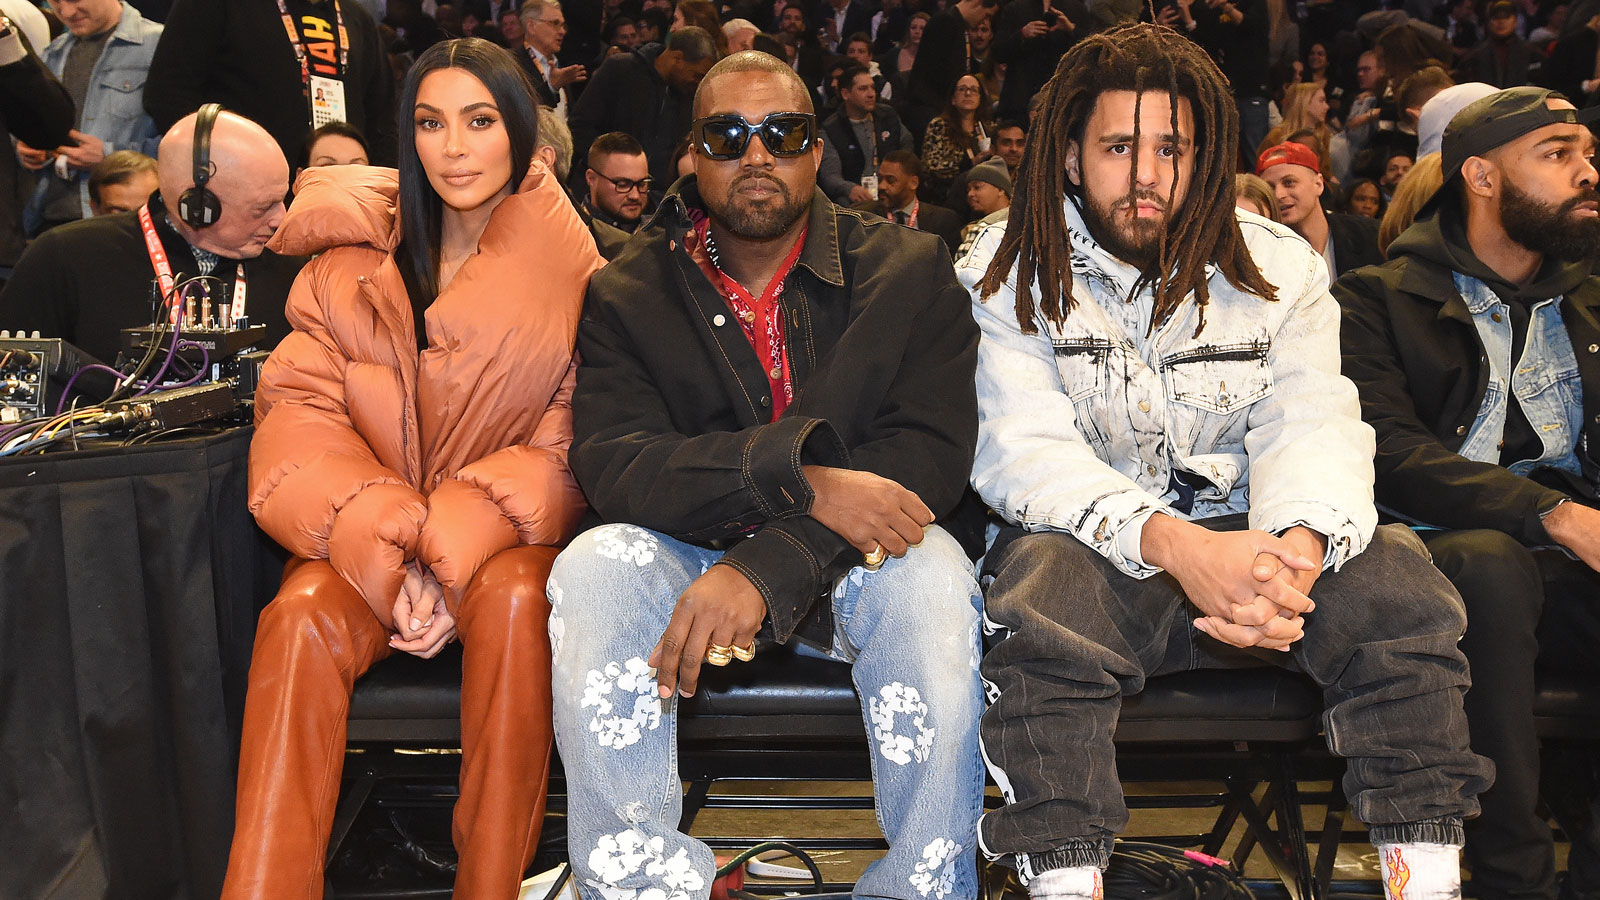 Chicago native Kanye West sat courtside of the All-Star game next to his wife Kim Kardashian and rapper J. Cole.